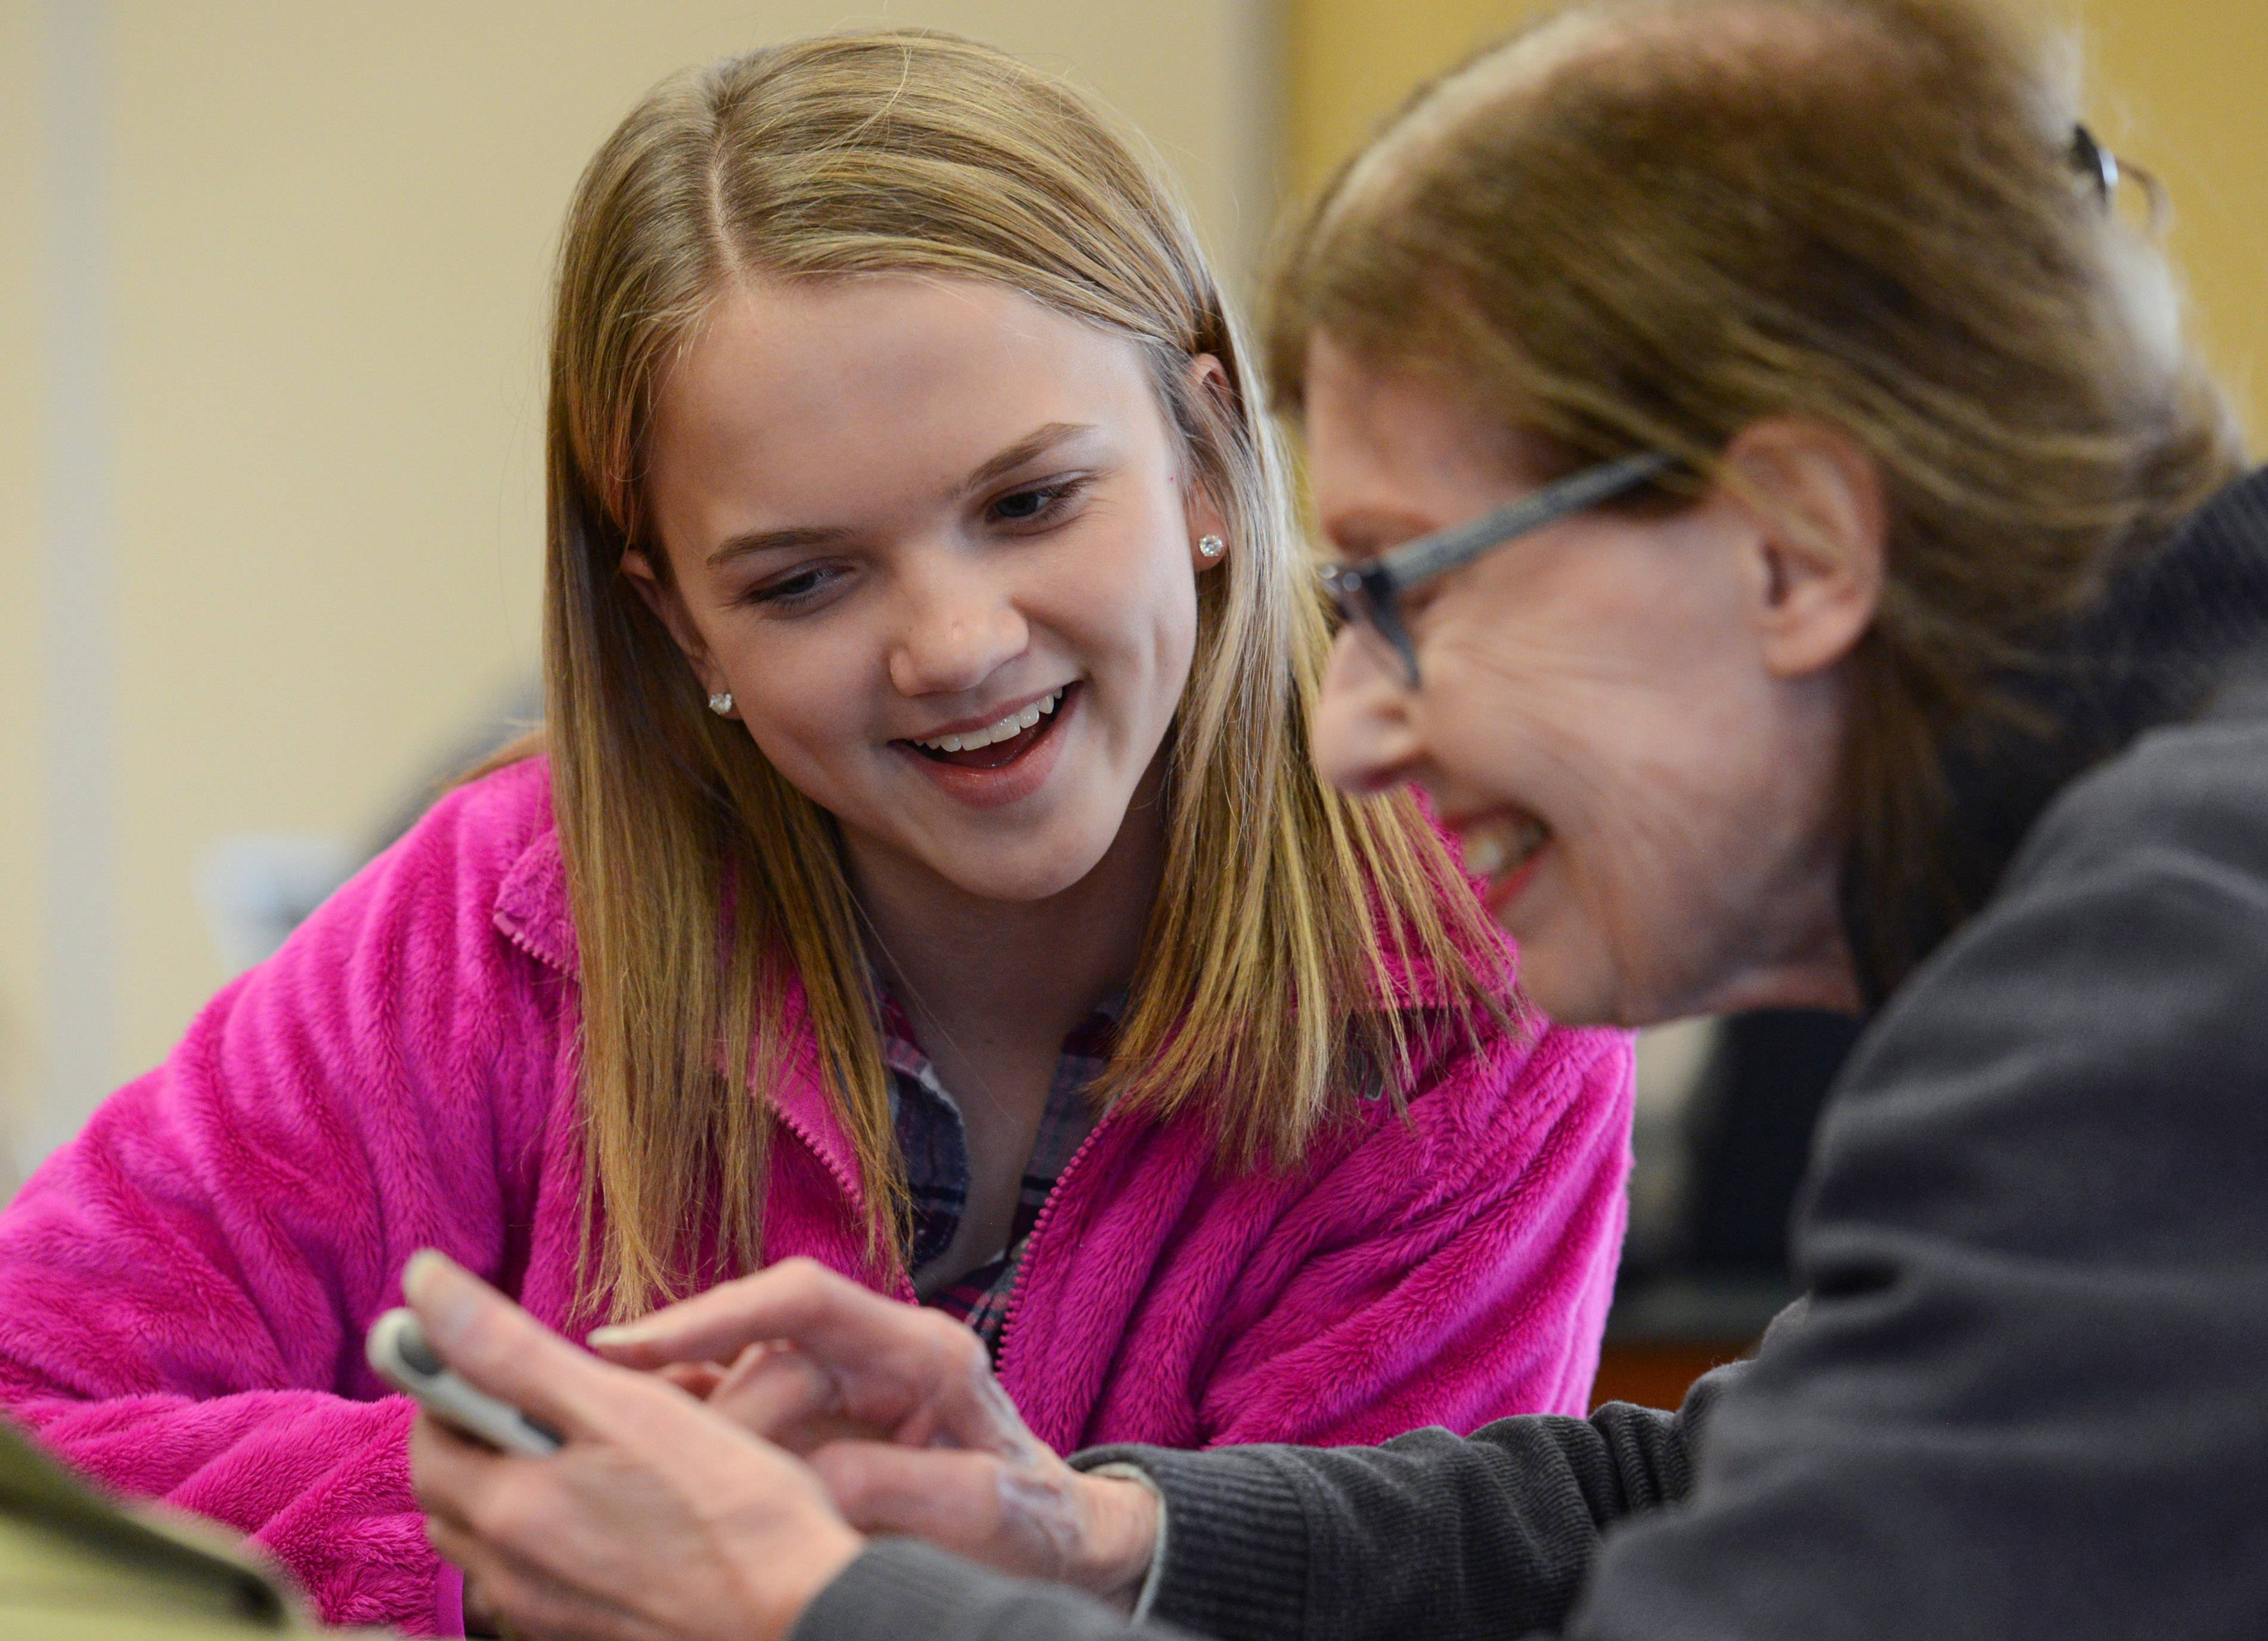 Fremont Middle School student Hope Peterson helps Sue Lewis, a resident of the Grand Dominion community in Mundelein, with her smartphone Thursday. About a dozen Fremont students visited Grand Dominion to help teach residents how best to use their phones, tablets and computers.